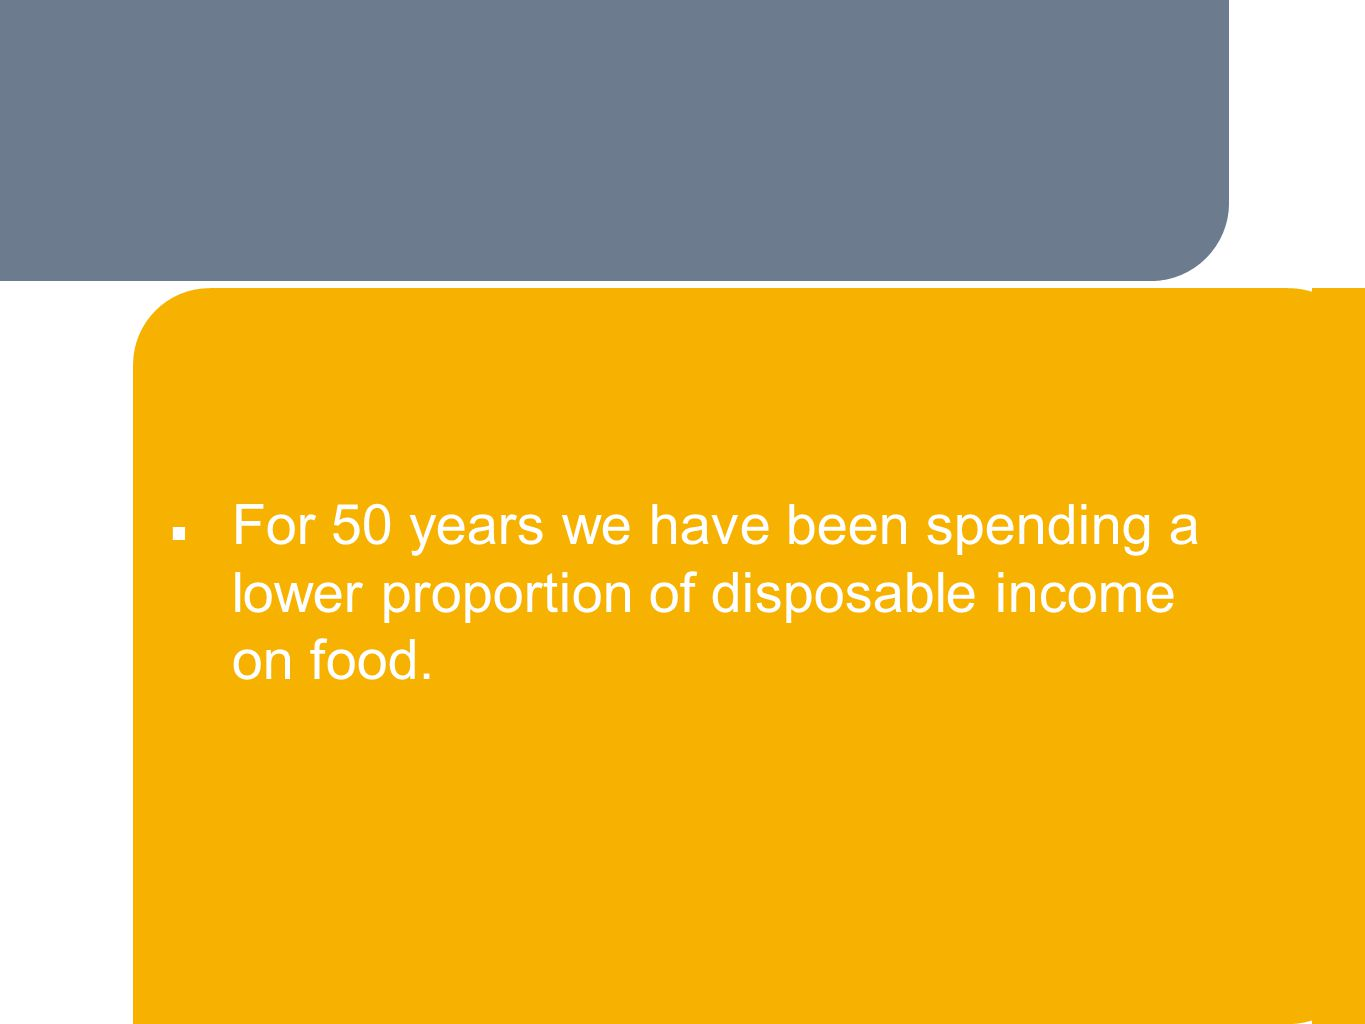 ■ For 50 years we have been spending a lower proportion of disposable income on food.